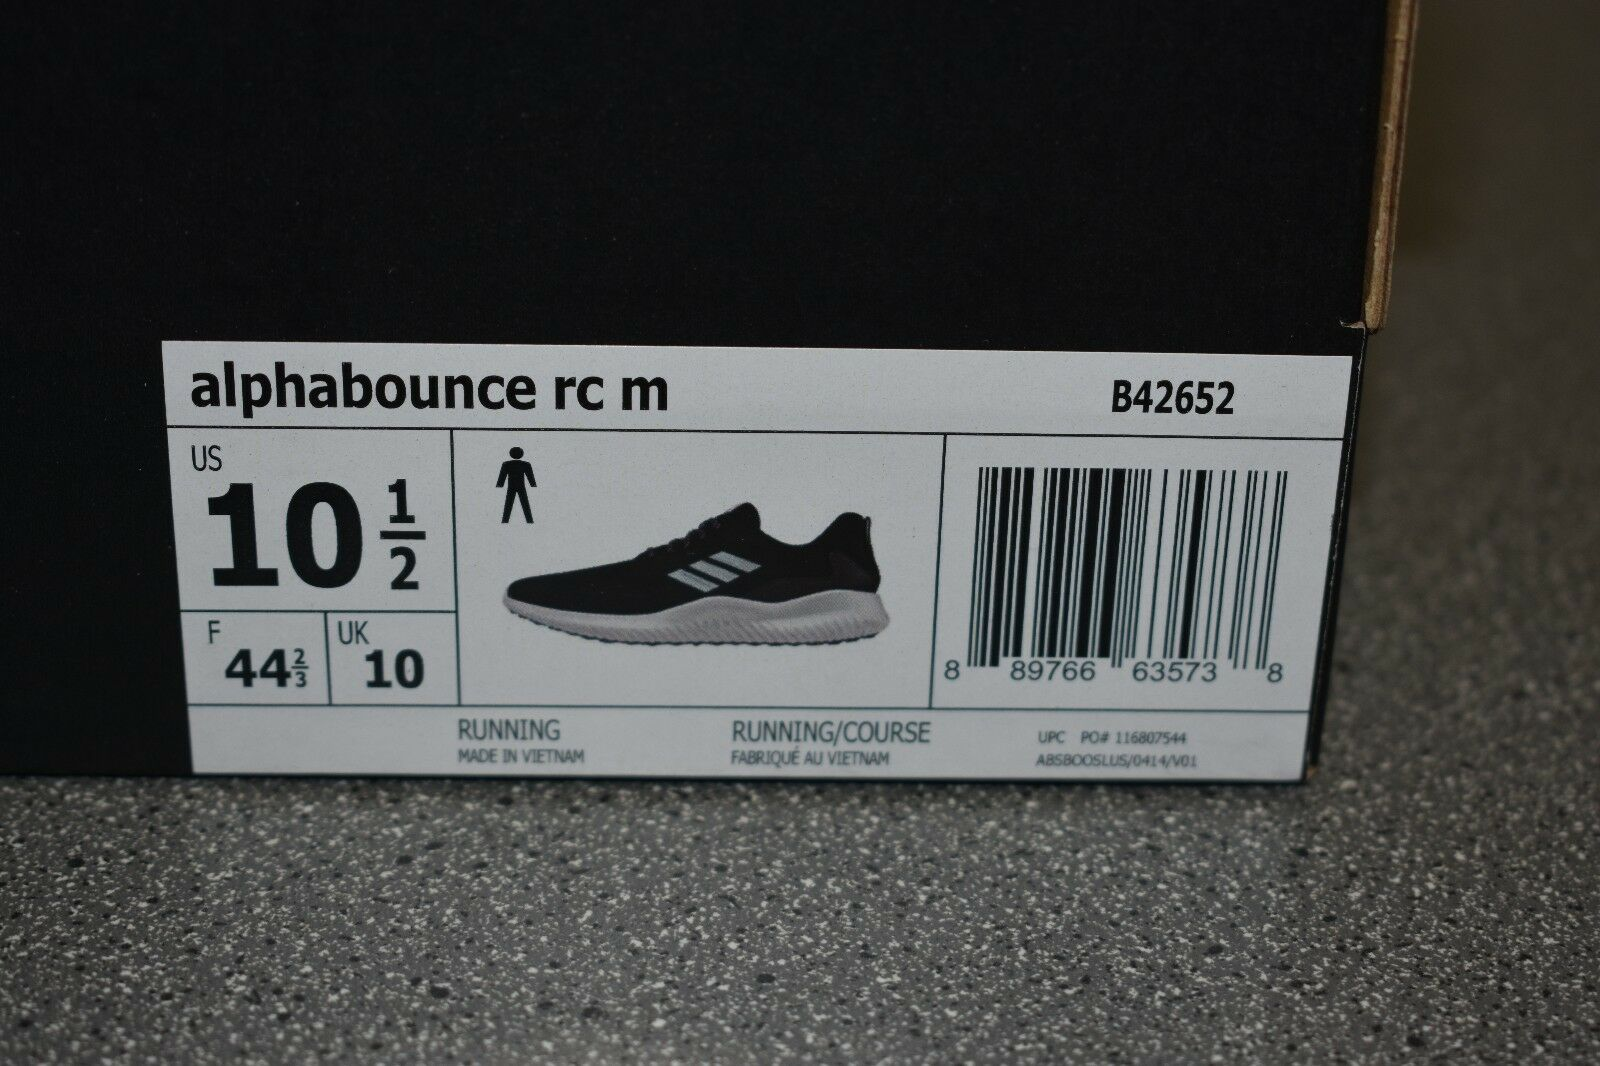 Uomo adidas alphabounce rc rc alphabounce b42652-shoes-size 10,5 22388f